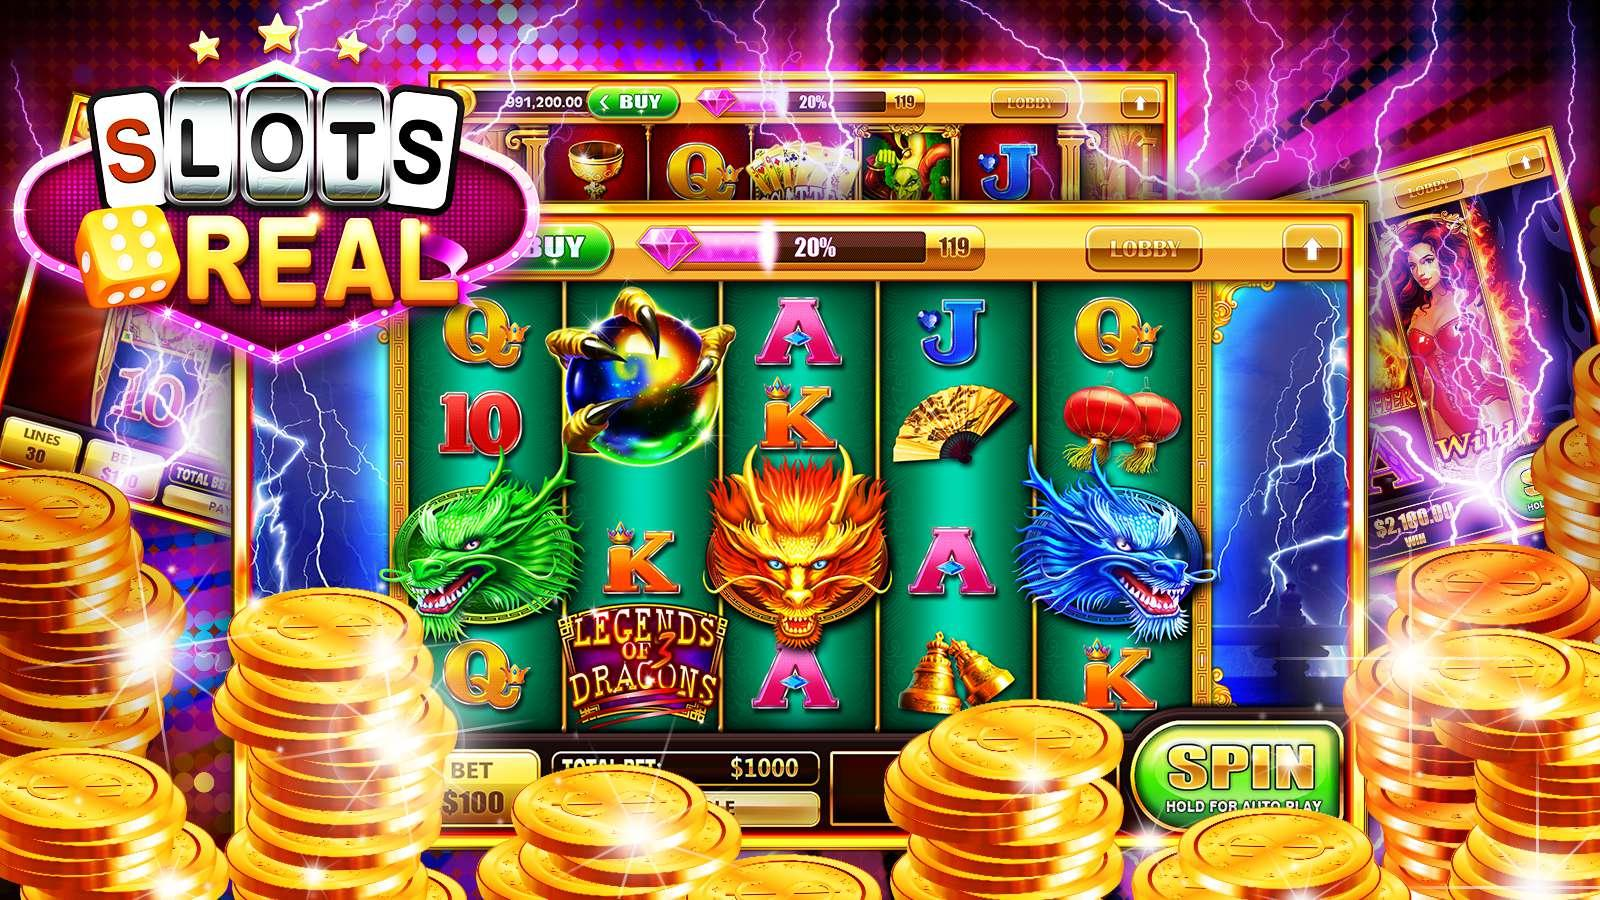 Spectra Slot Machine - Play for Free & Win for Real